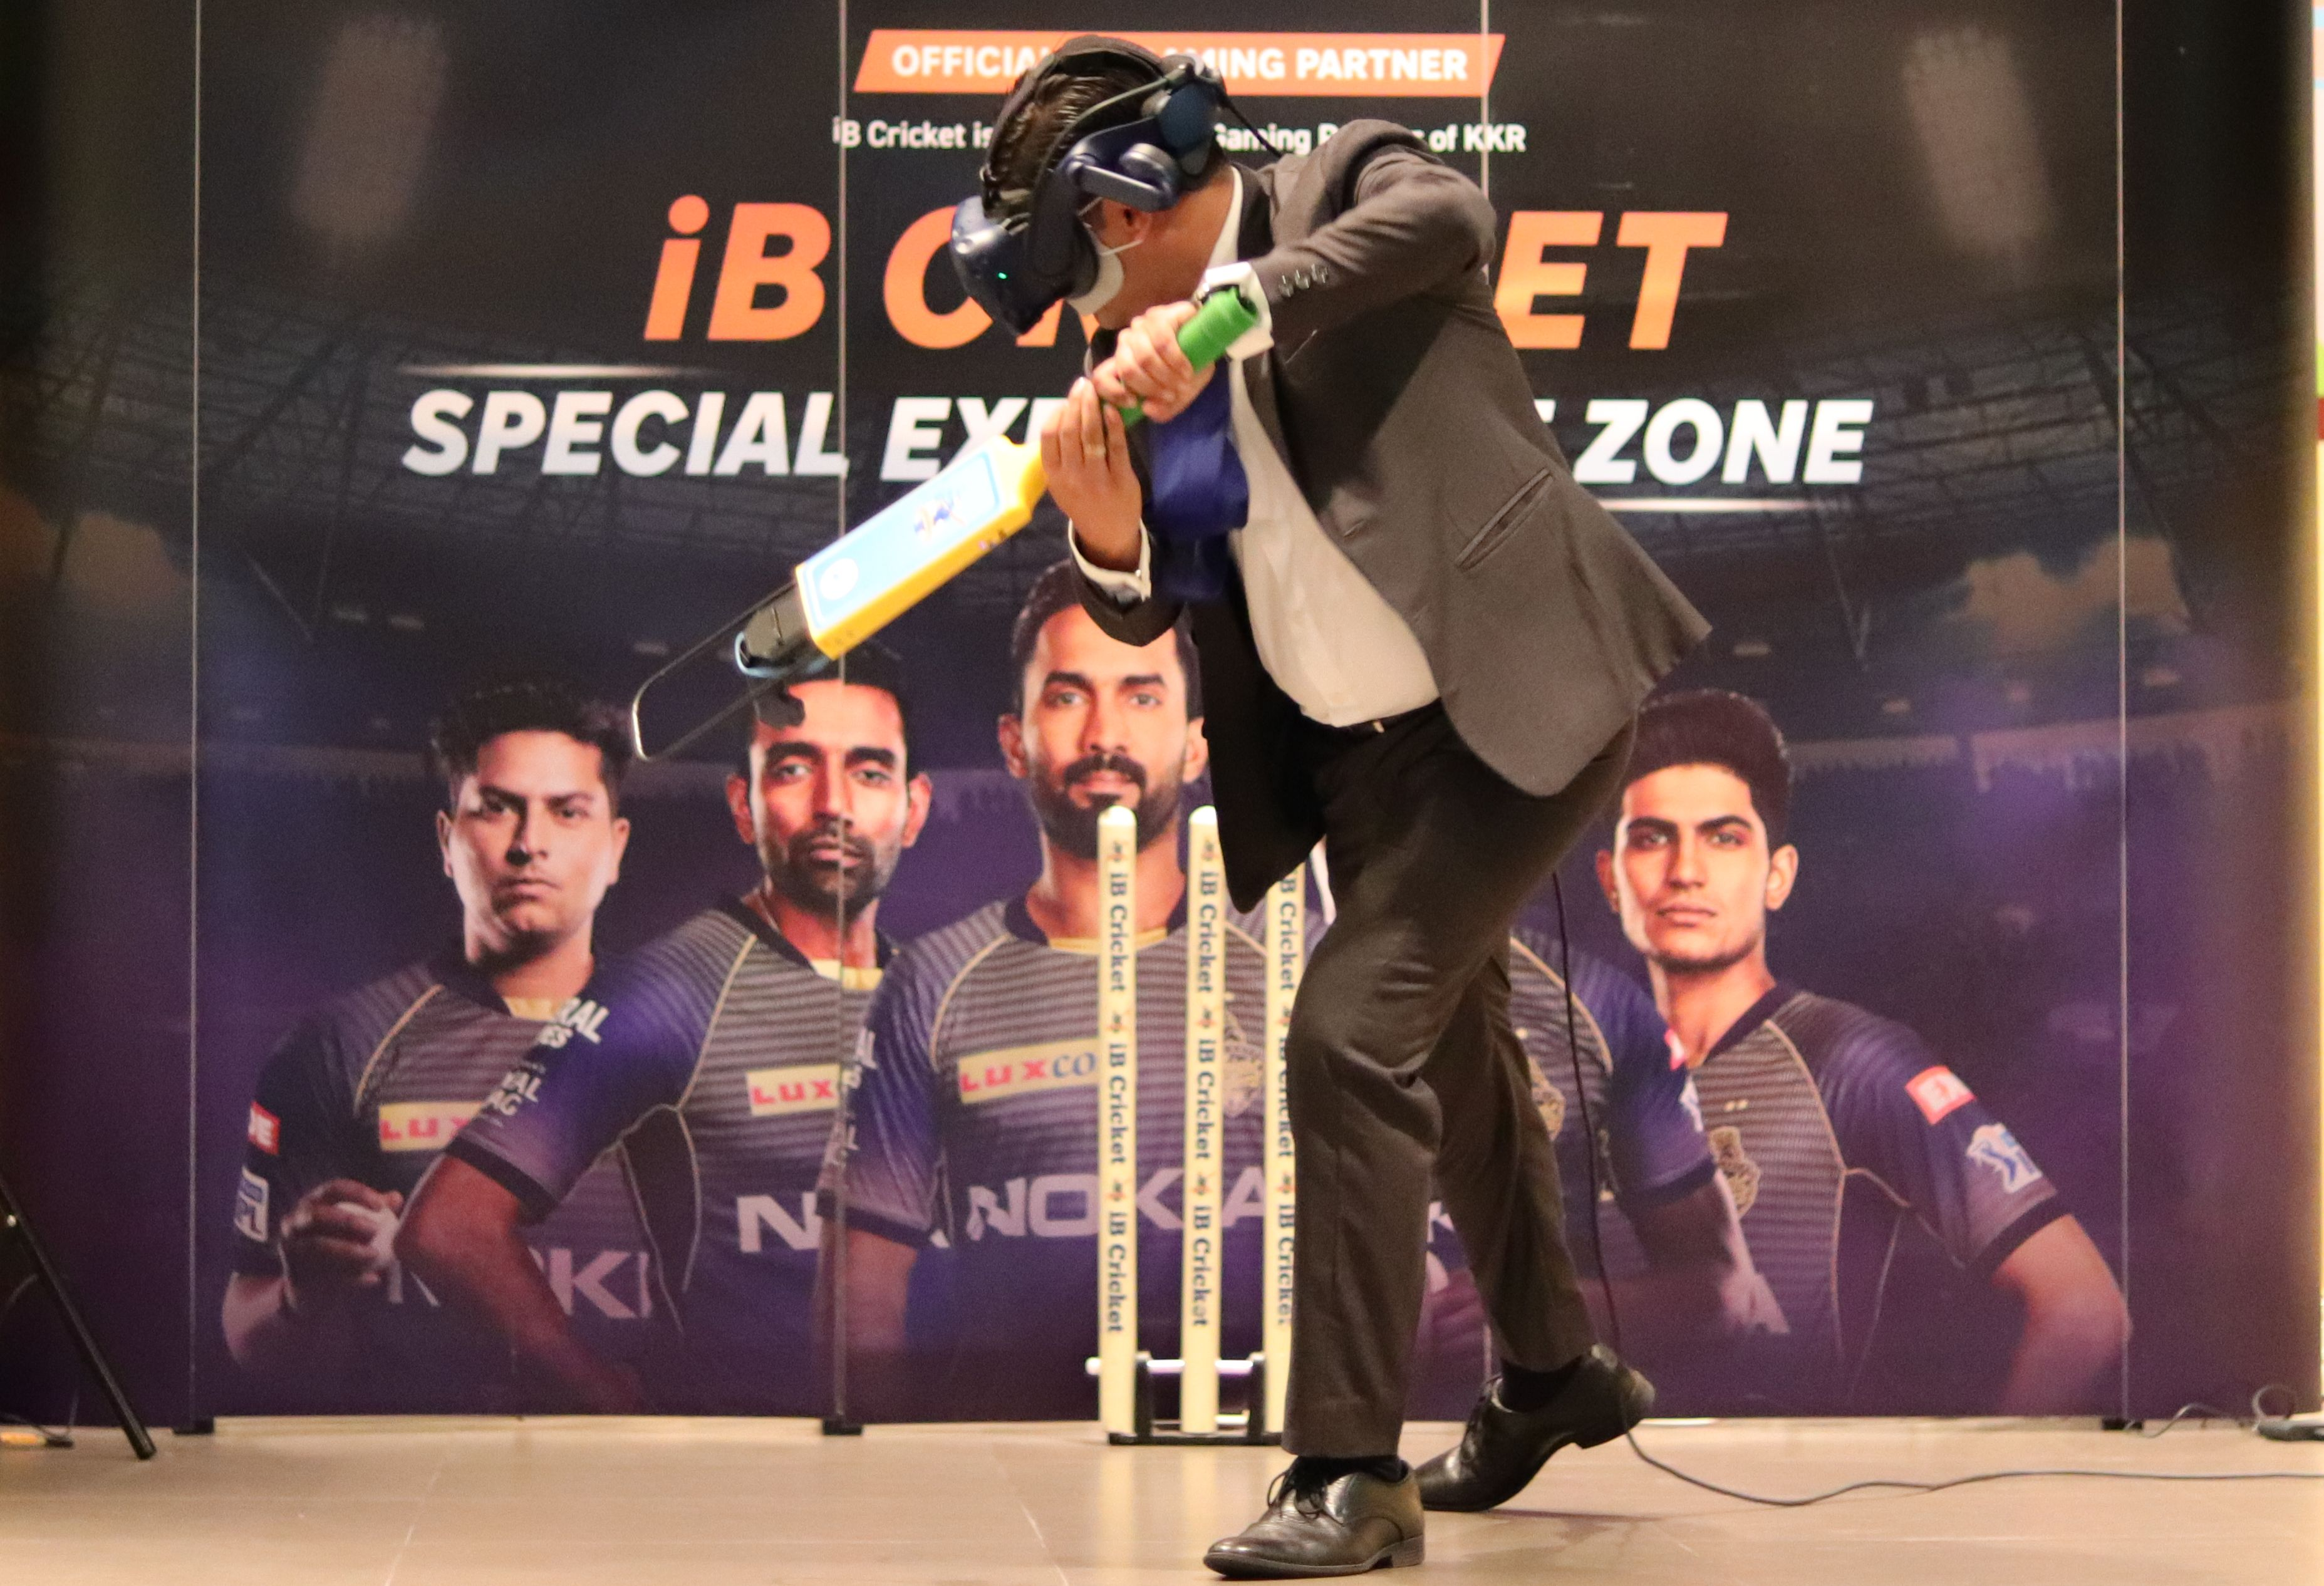 KKR-iB Cricket Fan Tour!